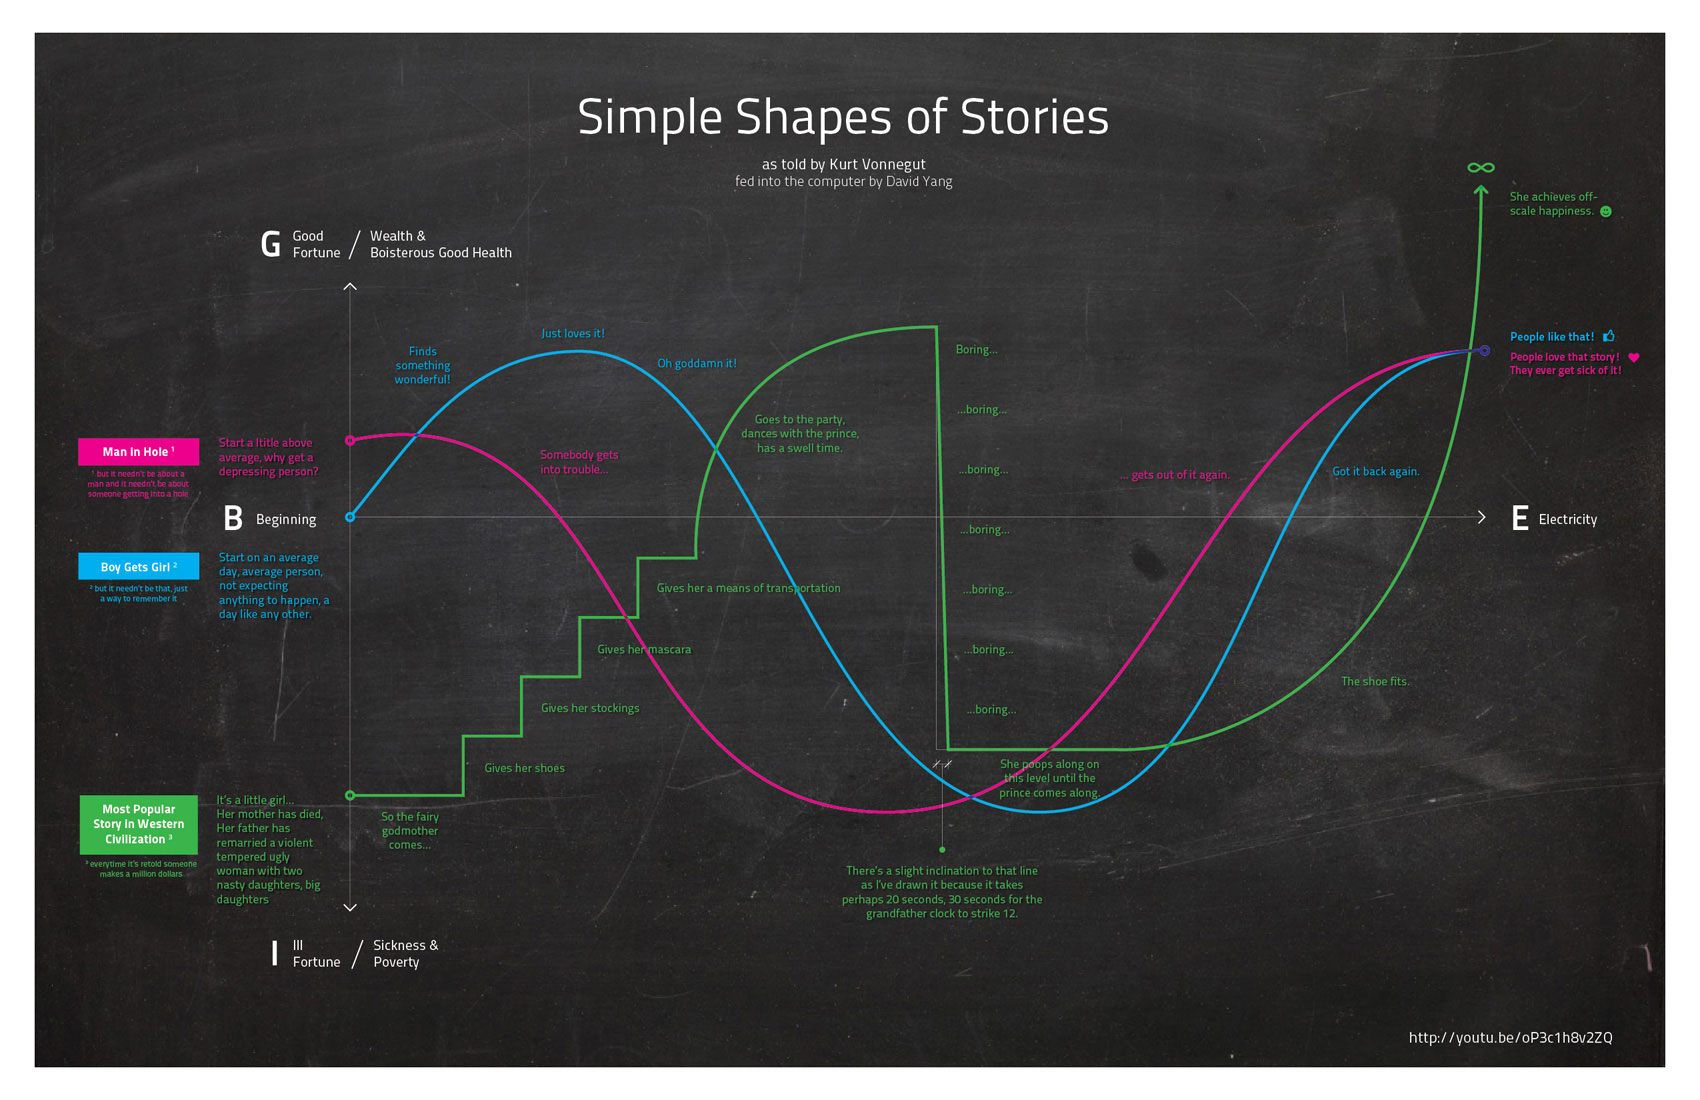 kurt-vonnegut-the-shapes-of-stories